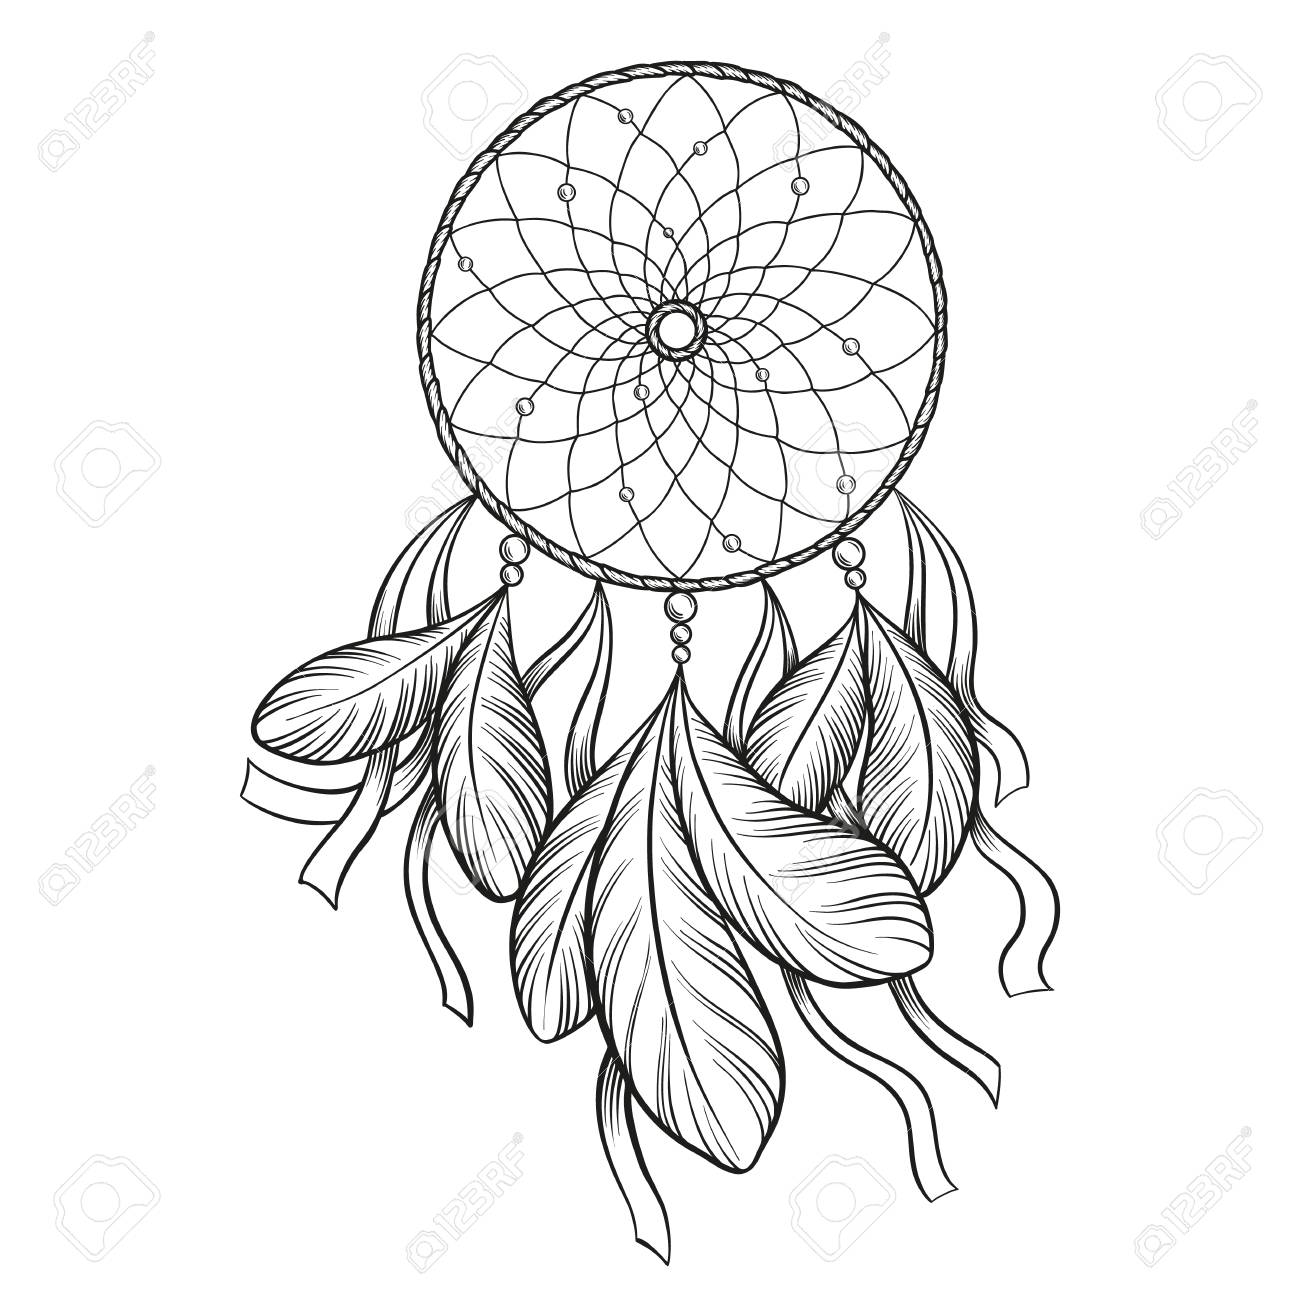 Black And White Drawing Dream Catcher Outline Wiring Diagrams November 2010 Electrocircuit Schema Datasheet Hand Drawn Vector Isolated On Rh 123rf Com